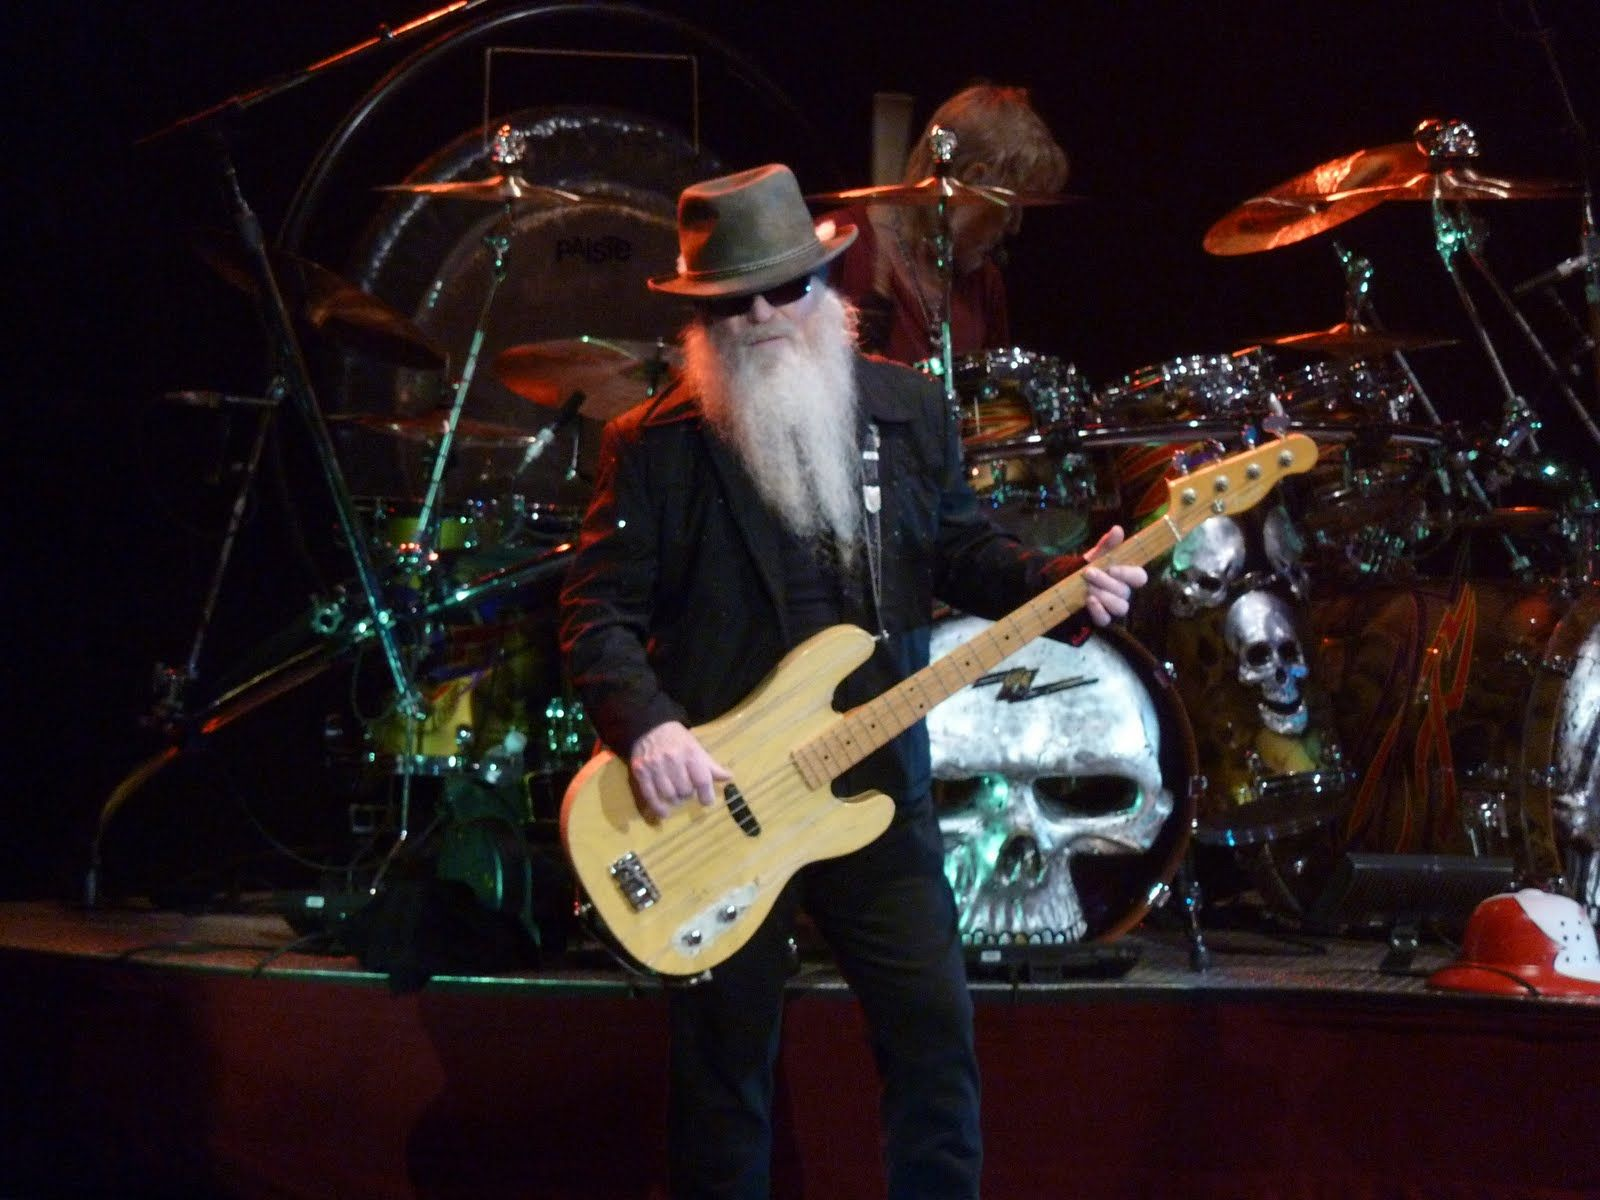 ZZ-TOP top hard rock guitars guitar concert concerts drums wallpaper | 1600x1200 | 88801 | WallpaperUP